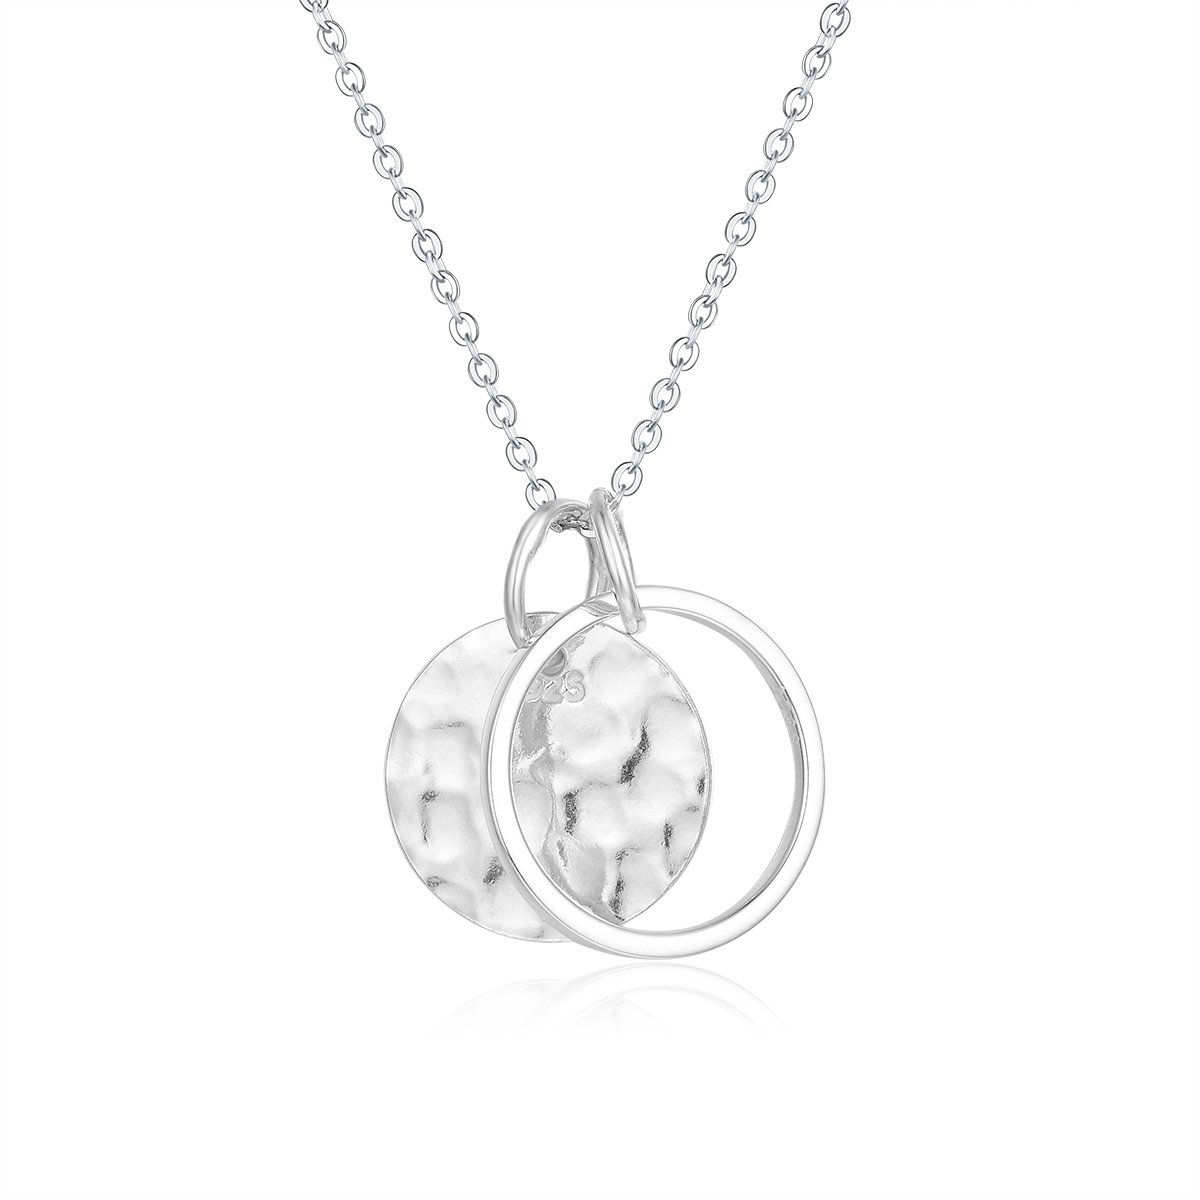 Wellme Sterling Silver Hammered Disc Karma Circle Pendant with 18'' Necklace Chain Fine Jewelry (Karma Circle Rolo Chain)